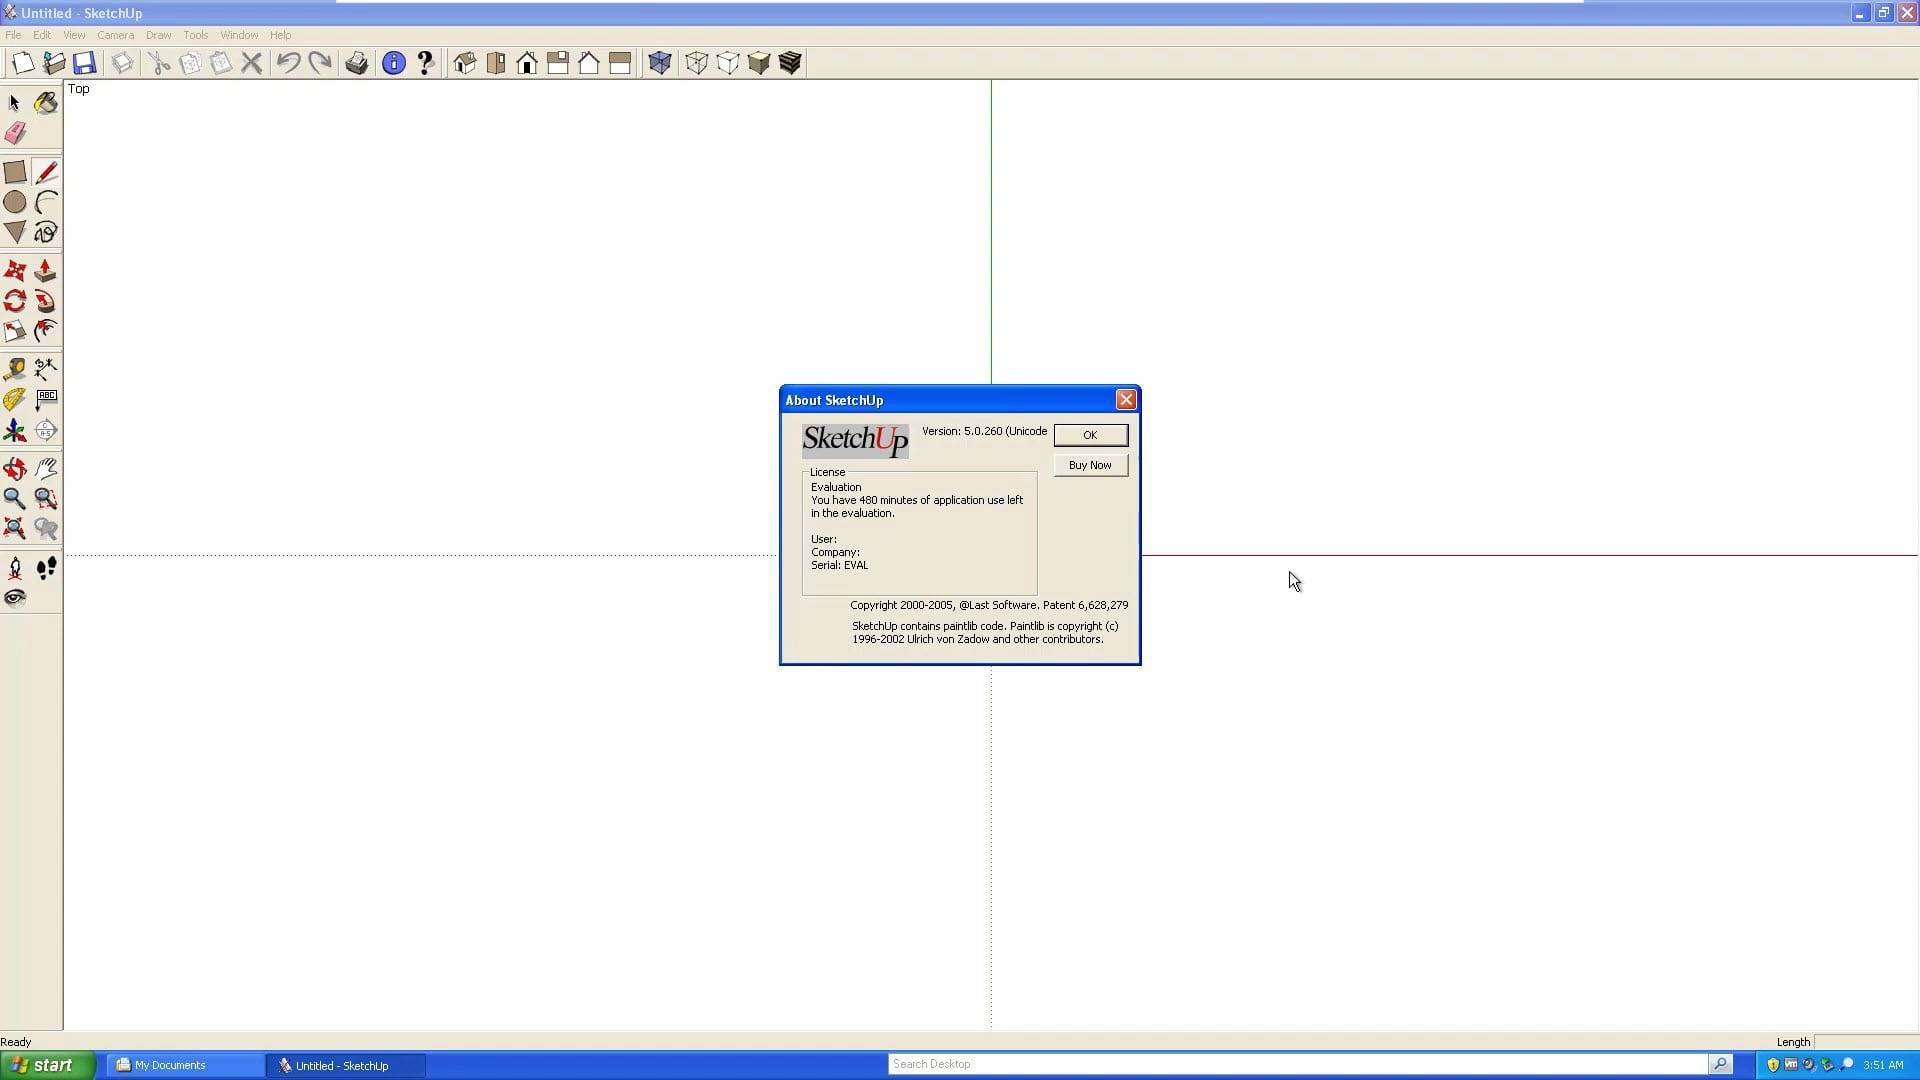 SketchUp 5 About